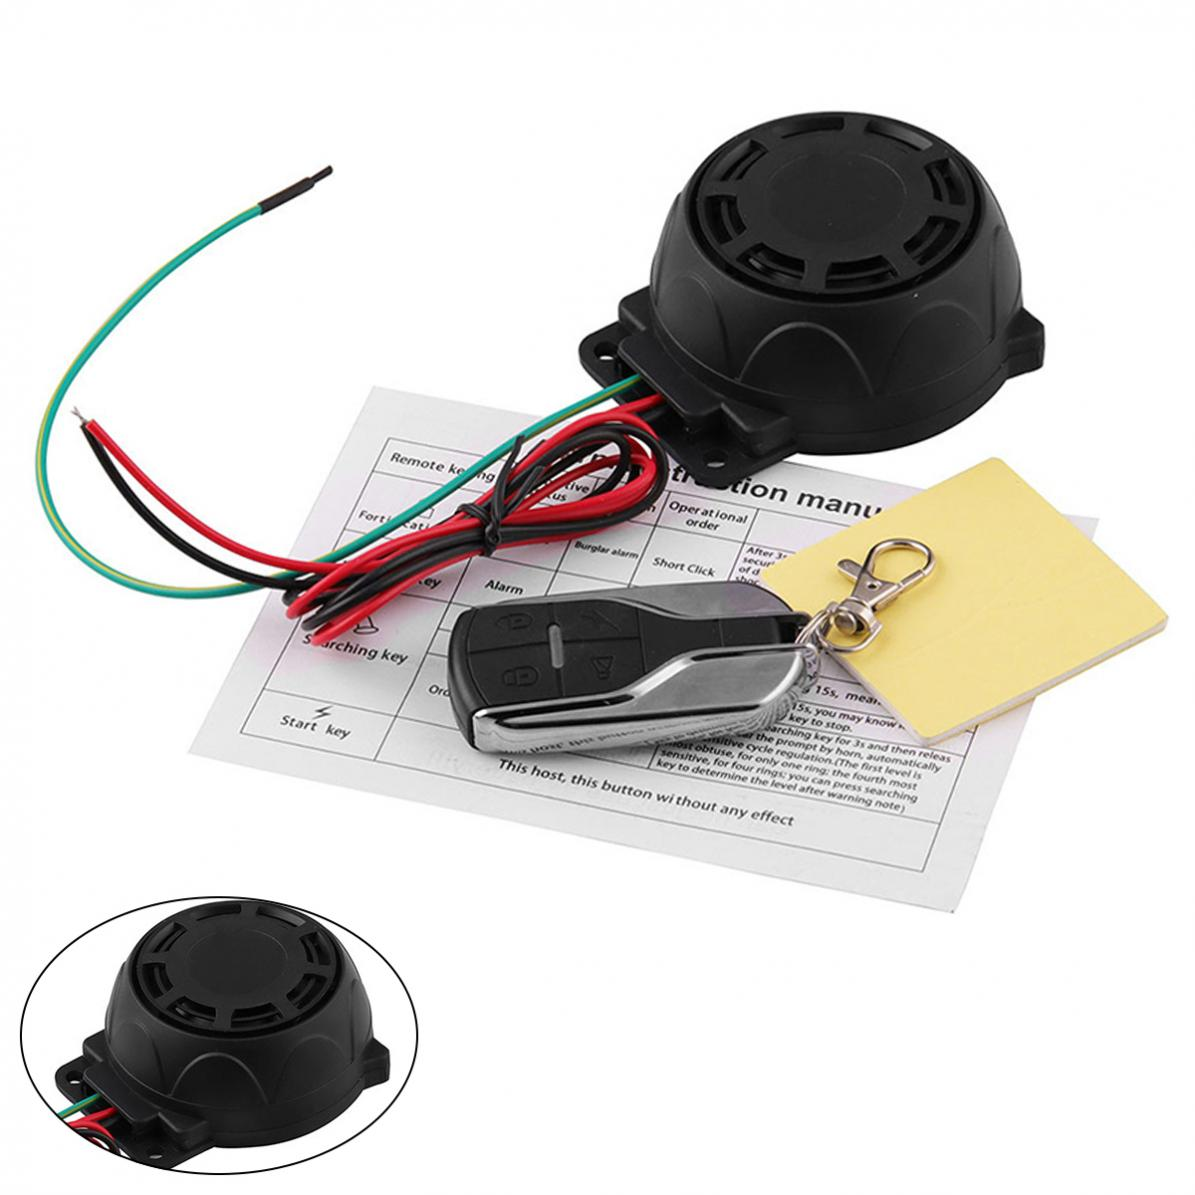 125db 12V Motorcycle General Purpose Burglar Alarm Scooter Alarm With  Engine Start Remote Control Key For Motorcycle Anti-theft